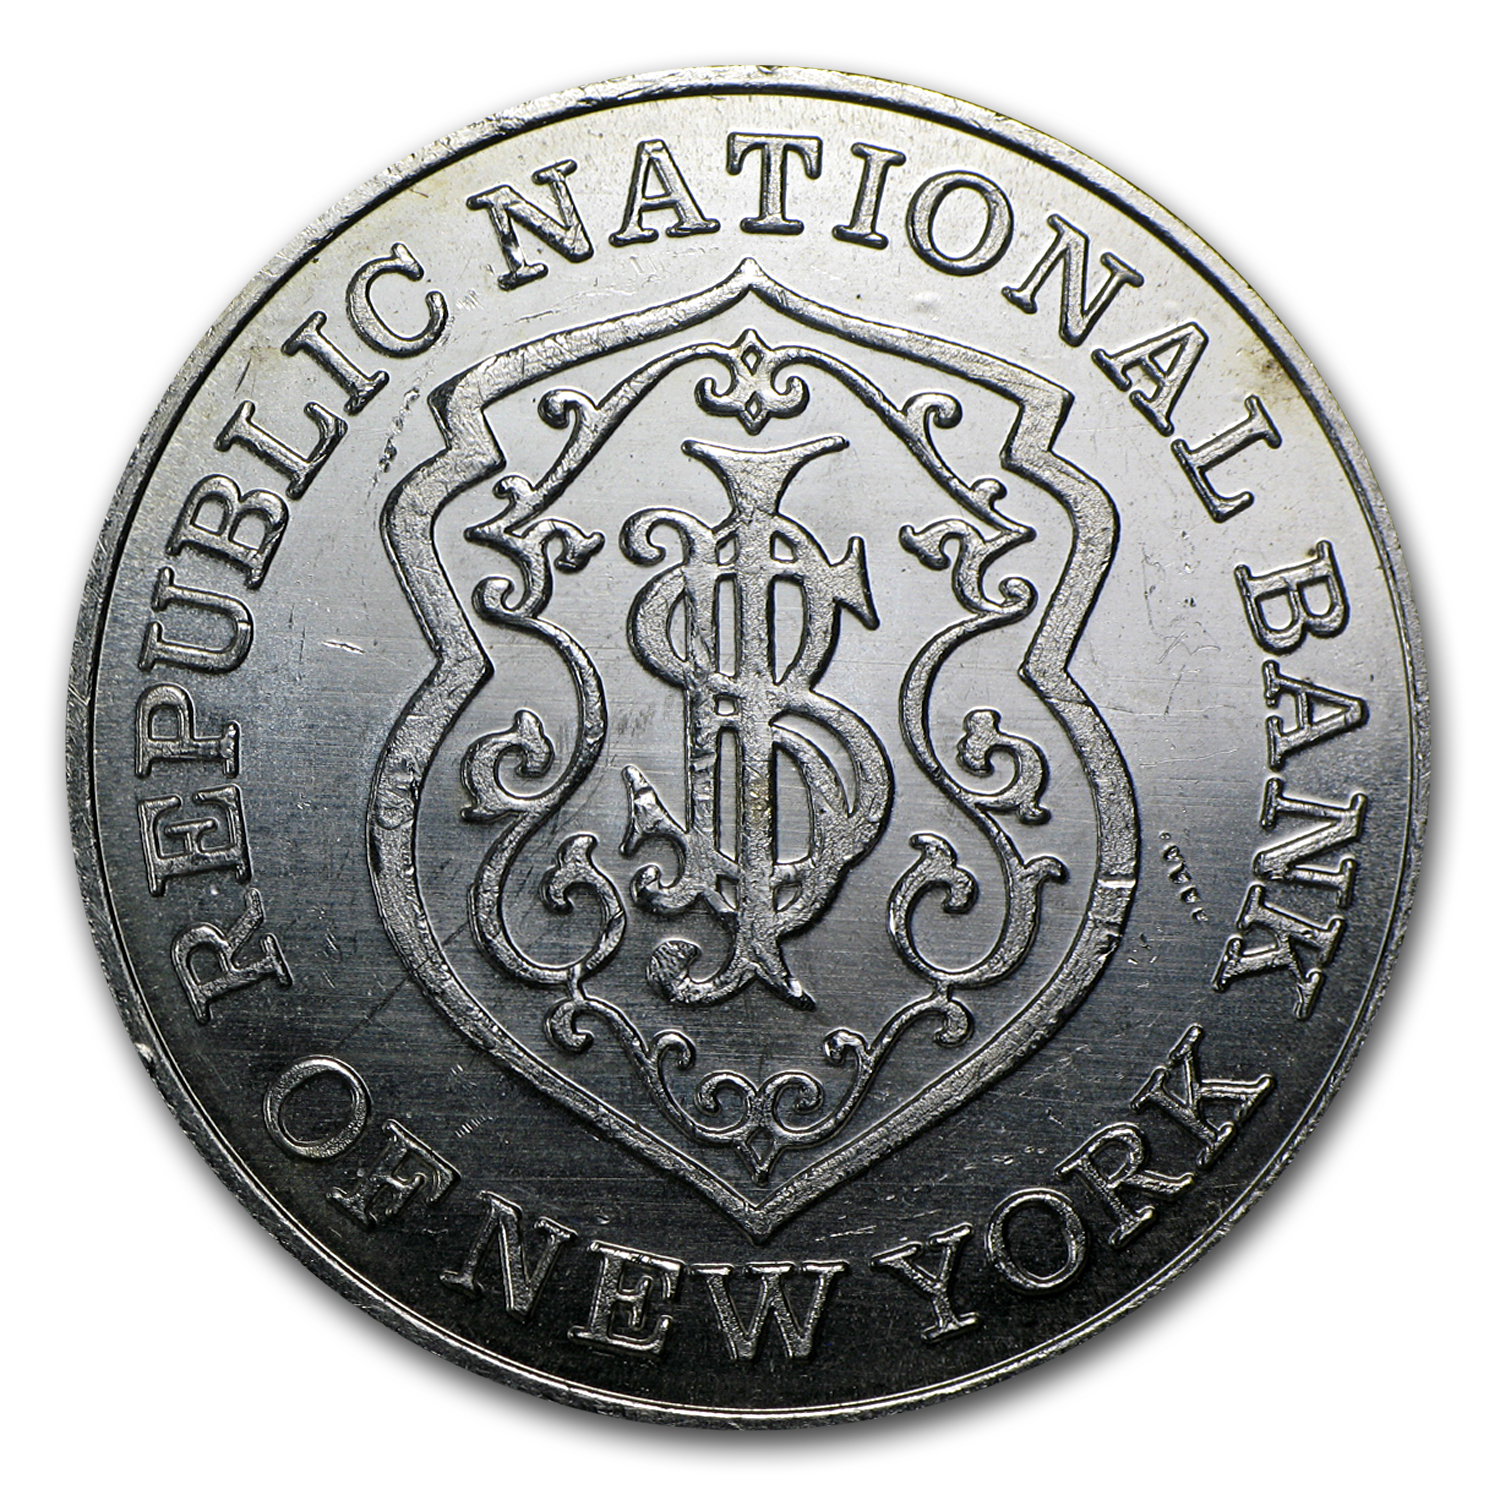 1 oz Silver Round - Republic National Bank of New York